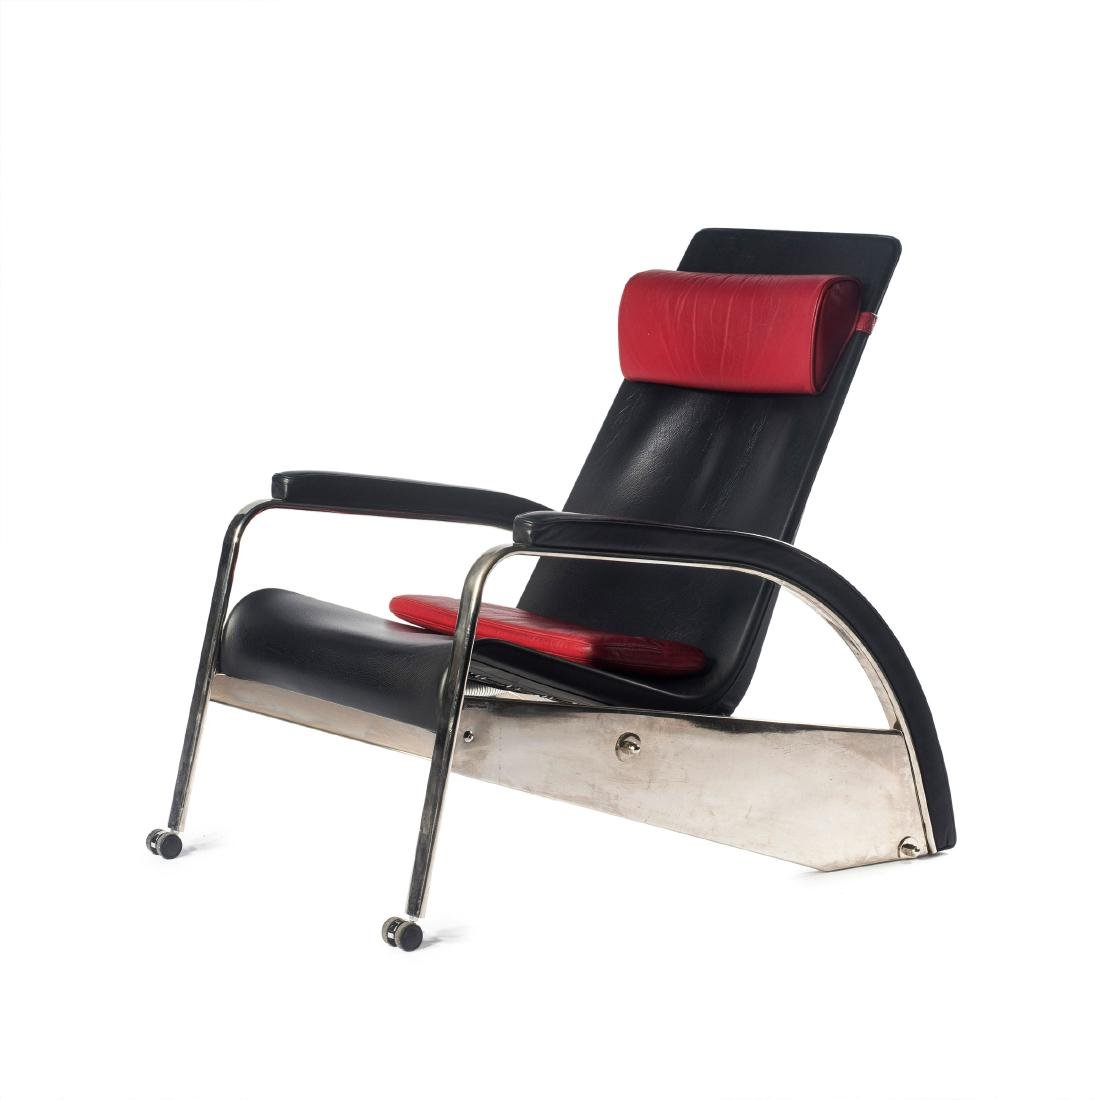 'Visiteur' easy chair, 1948